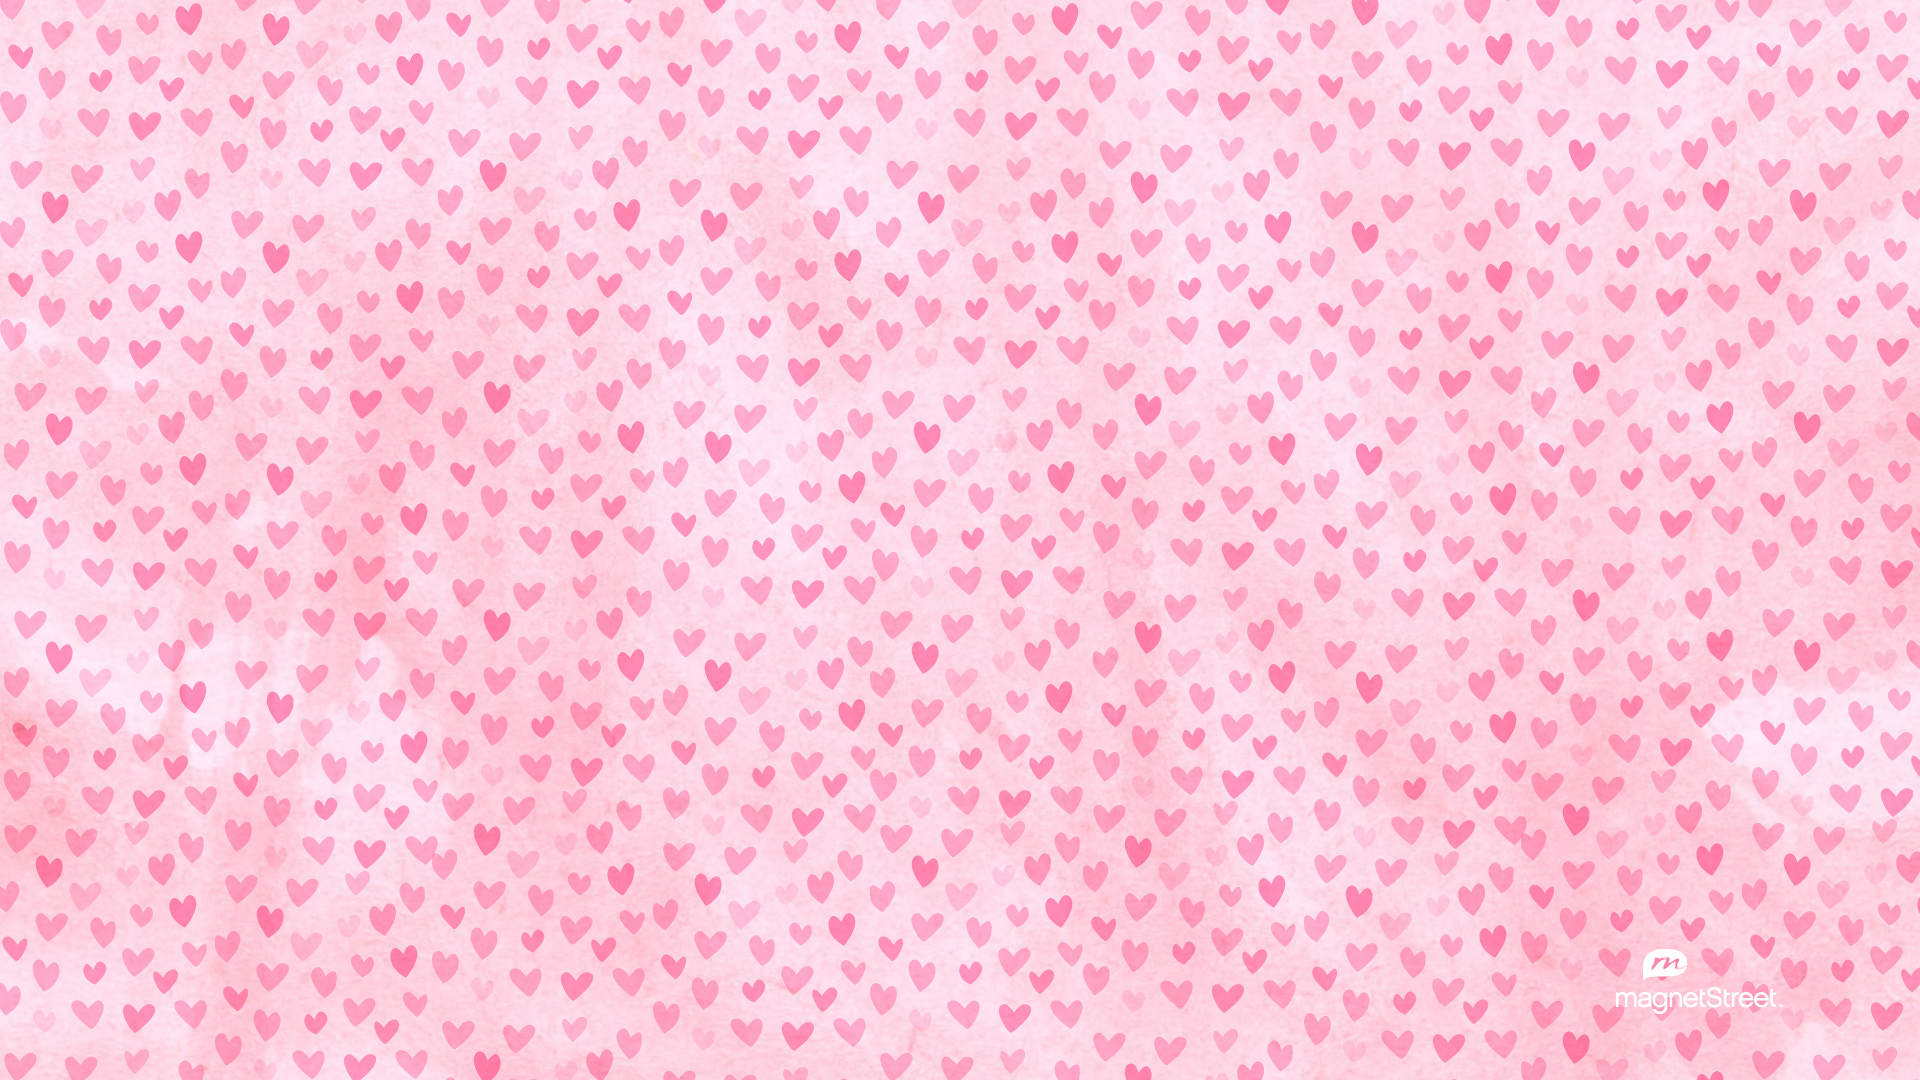 Valentines Day Desktop Background   Wallpaper High Definition High 1920x1080